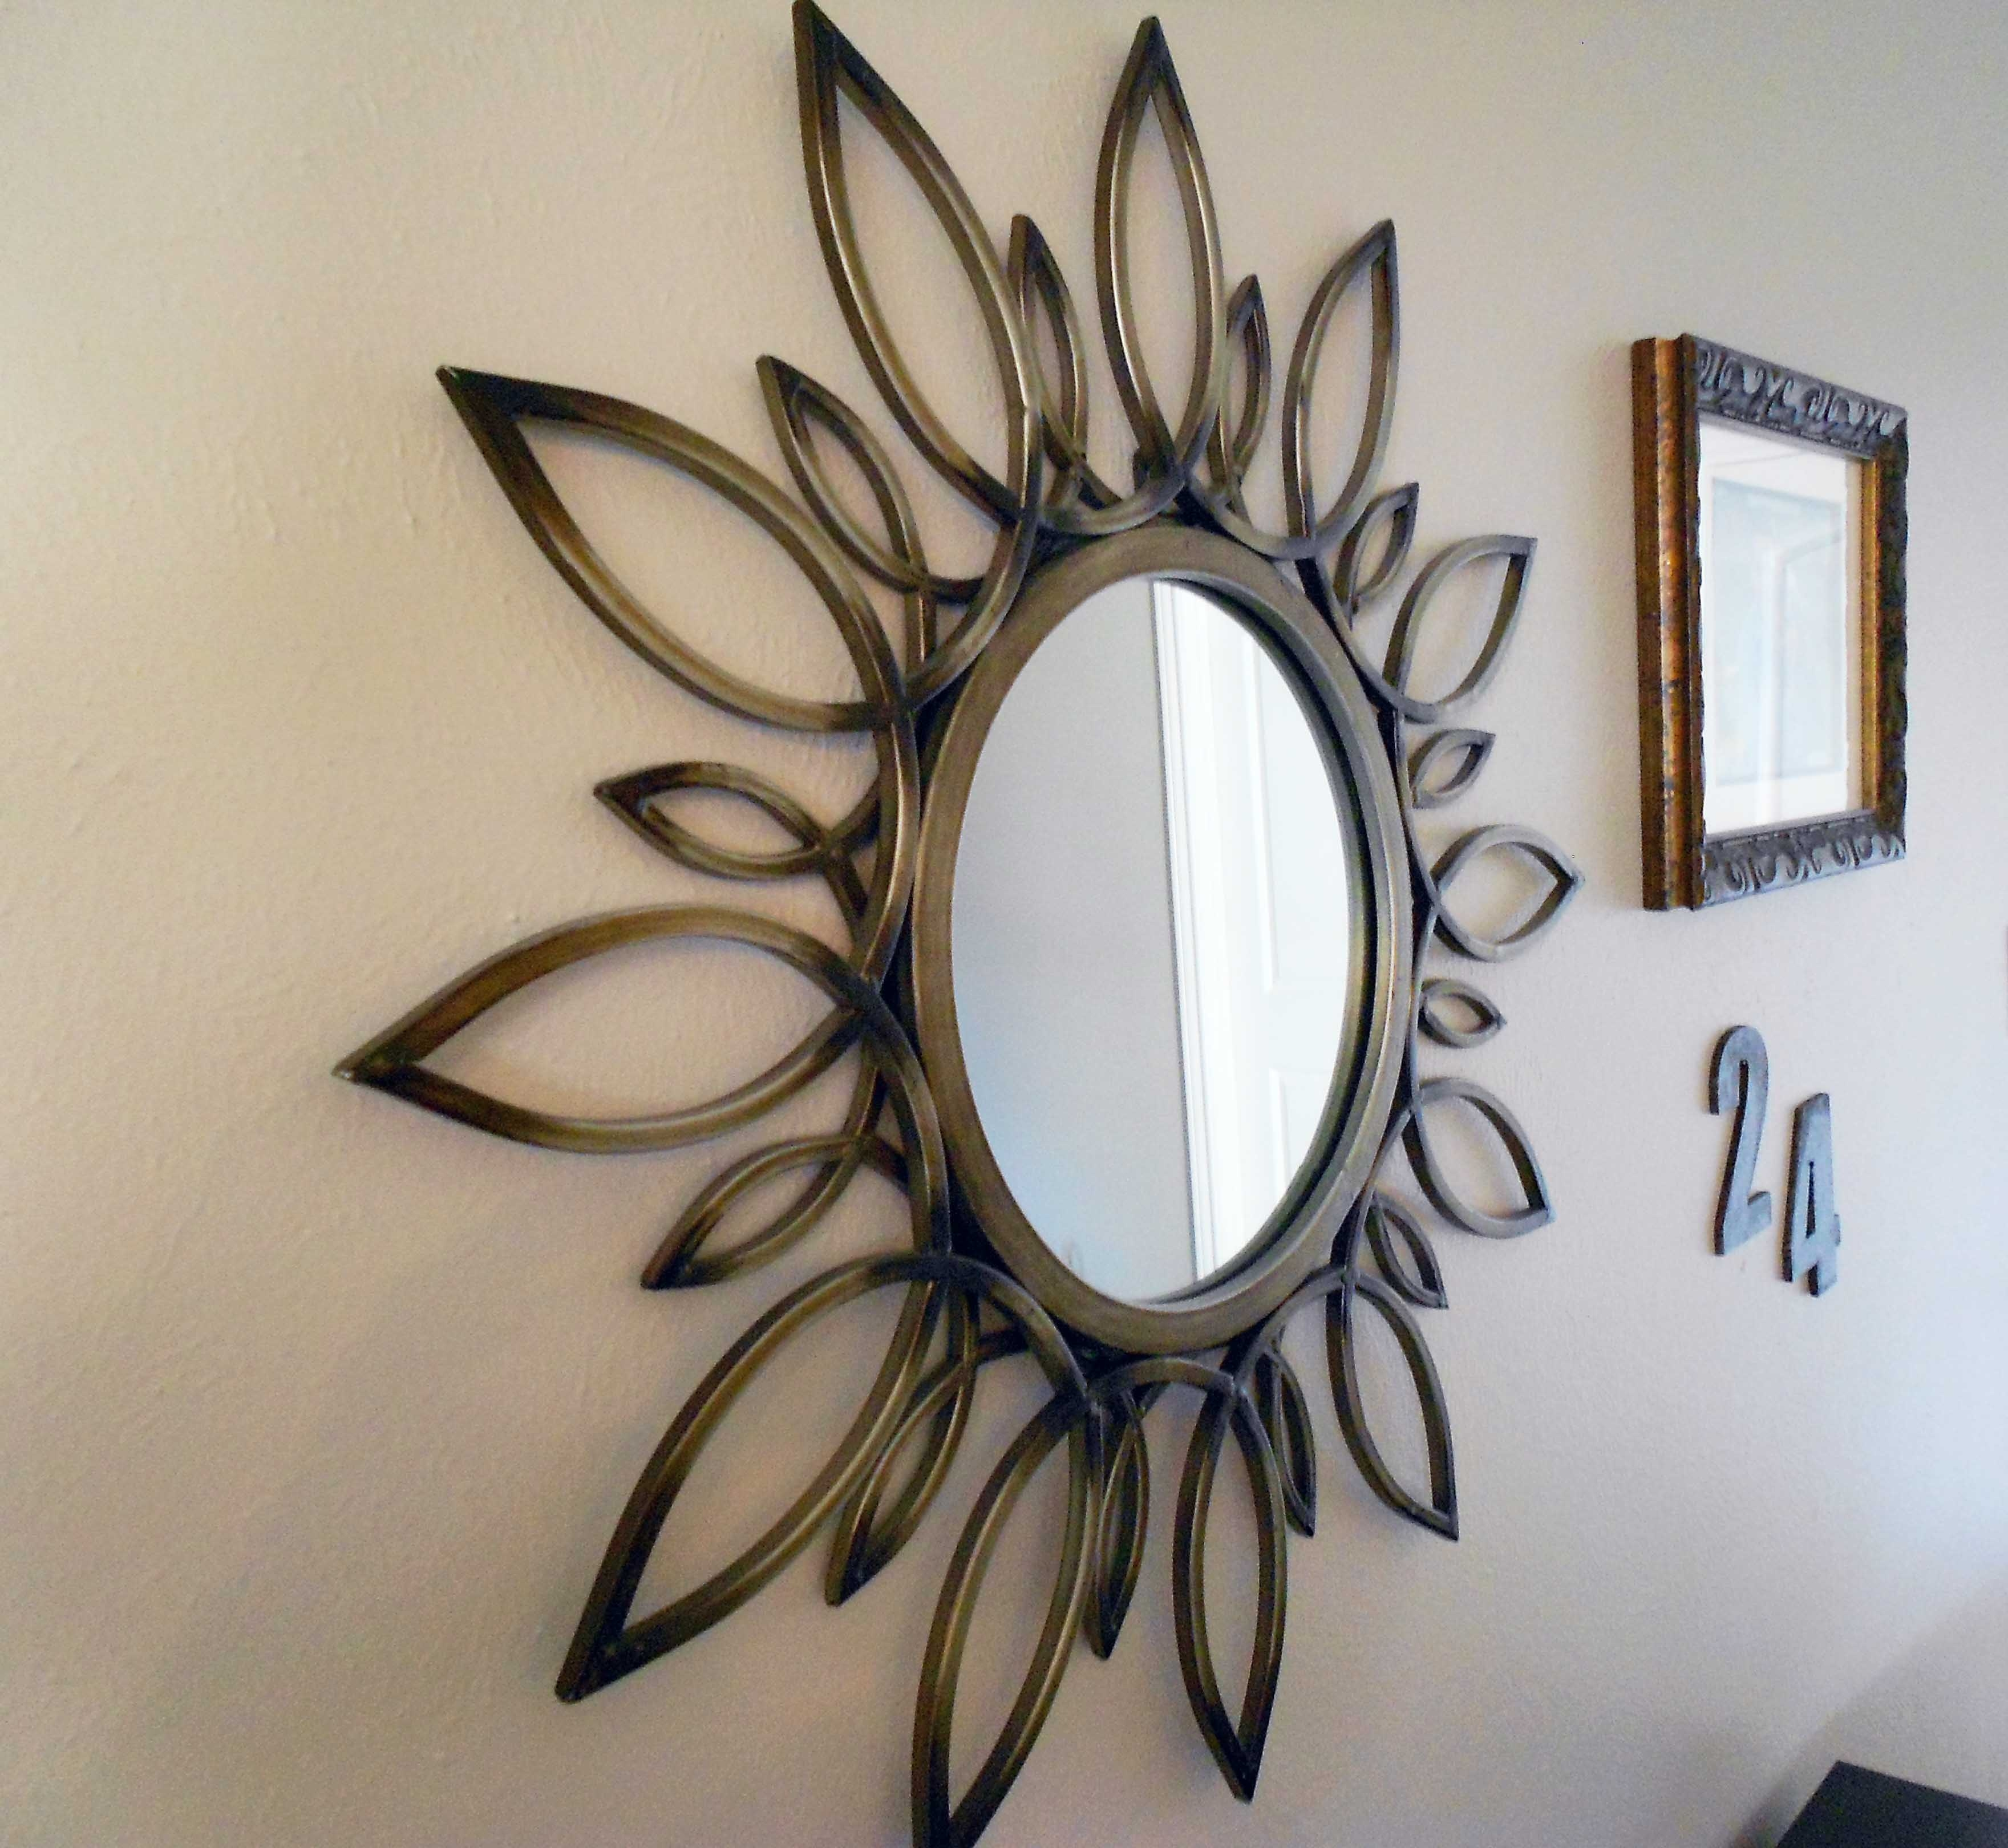 Mirrored Circles Wall Decor 148 Enchanting Ideas With Sun Mirror Inside Sun Mirrors For Sale (Image 8 of 15)